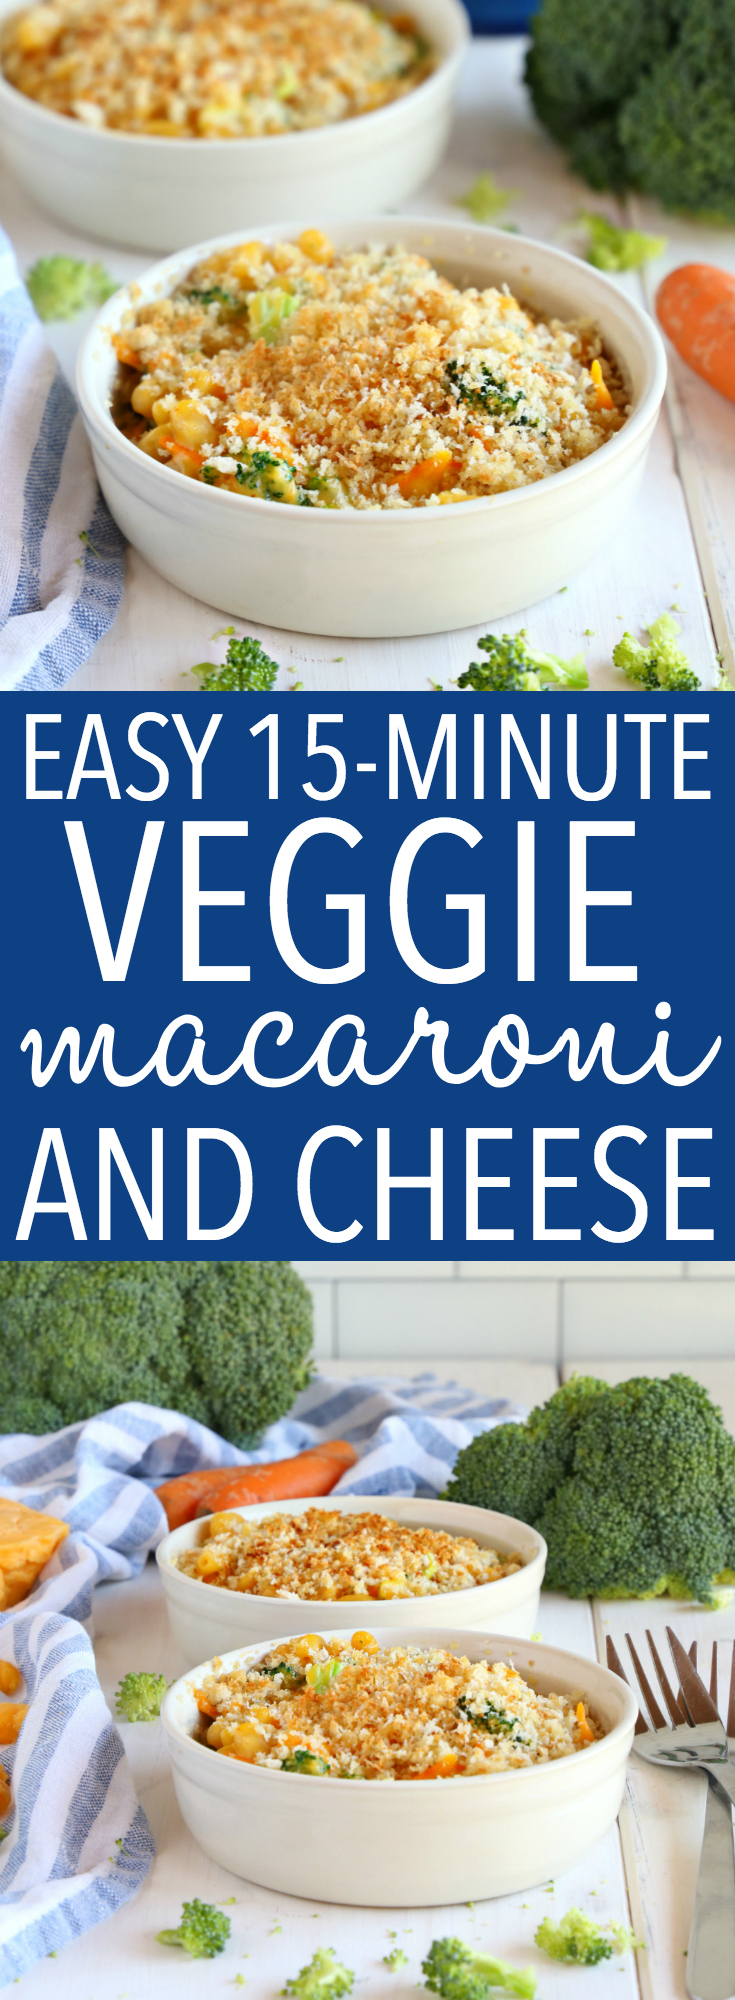 This Easy 15-Minute Vegetarian Macaroni and Cheese is the perfect quick and easy weeknight meal idea! It's packed with veggies and it's kid-friendly! Put a delicious meal on the table in 15 minutes! Recipe from thebusybaker.ca! #easy #vegetarian #veggie #macandcheese #healthy #healthymacandcheese #quick #family #meal #recipe #hiddenveggies #kidfriendly #macaroni #pasta #onepot #onepan